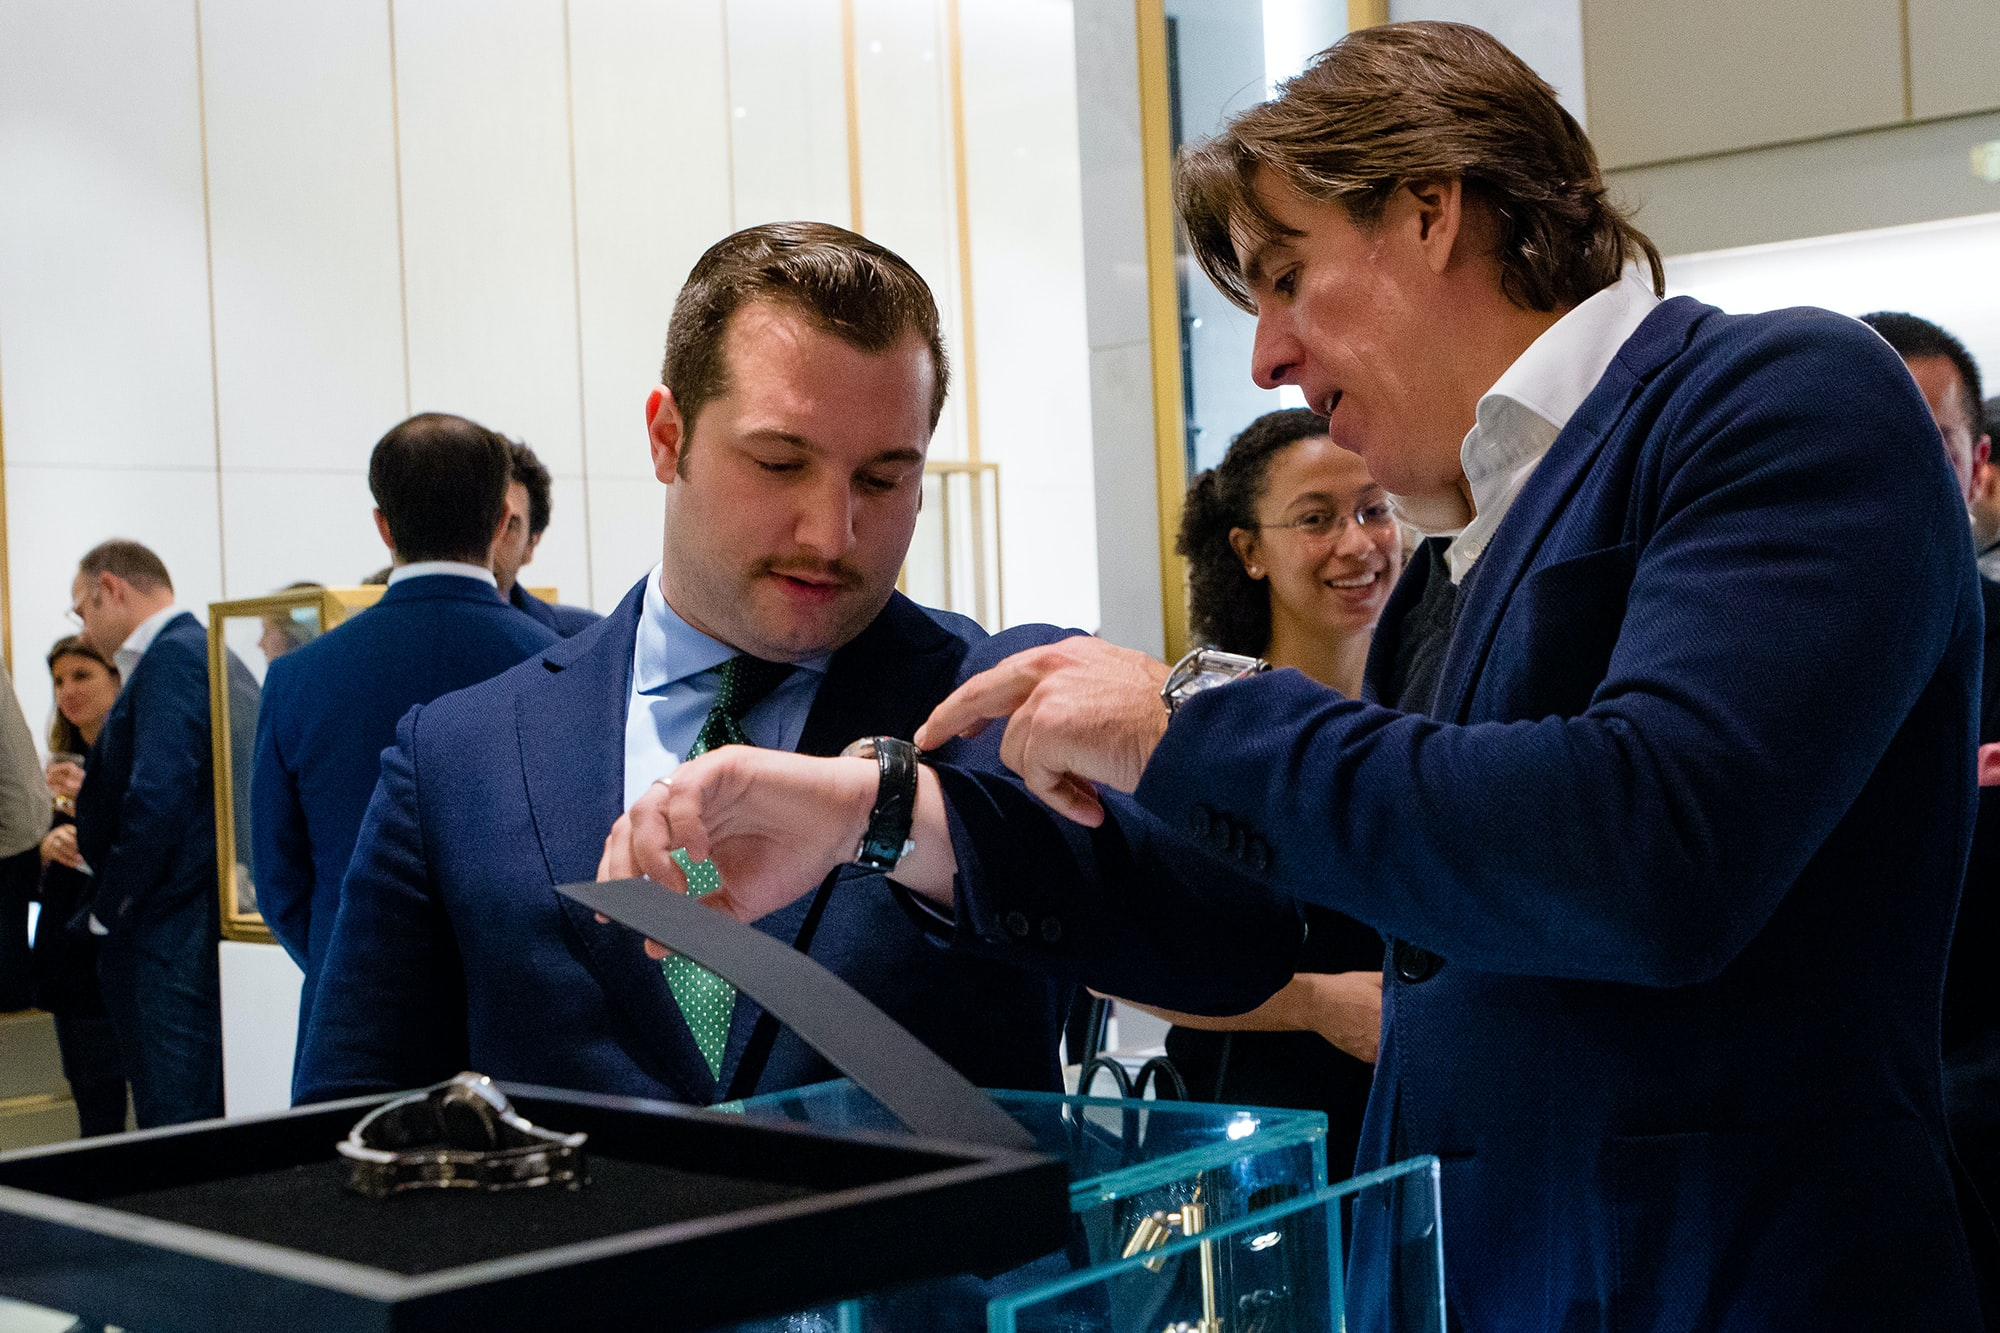 Photo Report: HODINKEE Celebrates London Jewelers' New Store In New York City's Oculus Photo Report: HODINKEE Celebrates London Jewelers' New Store In New York City's Oculus 20161109 LondonJewelersxHodinkee 081